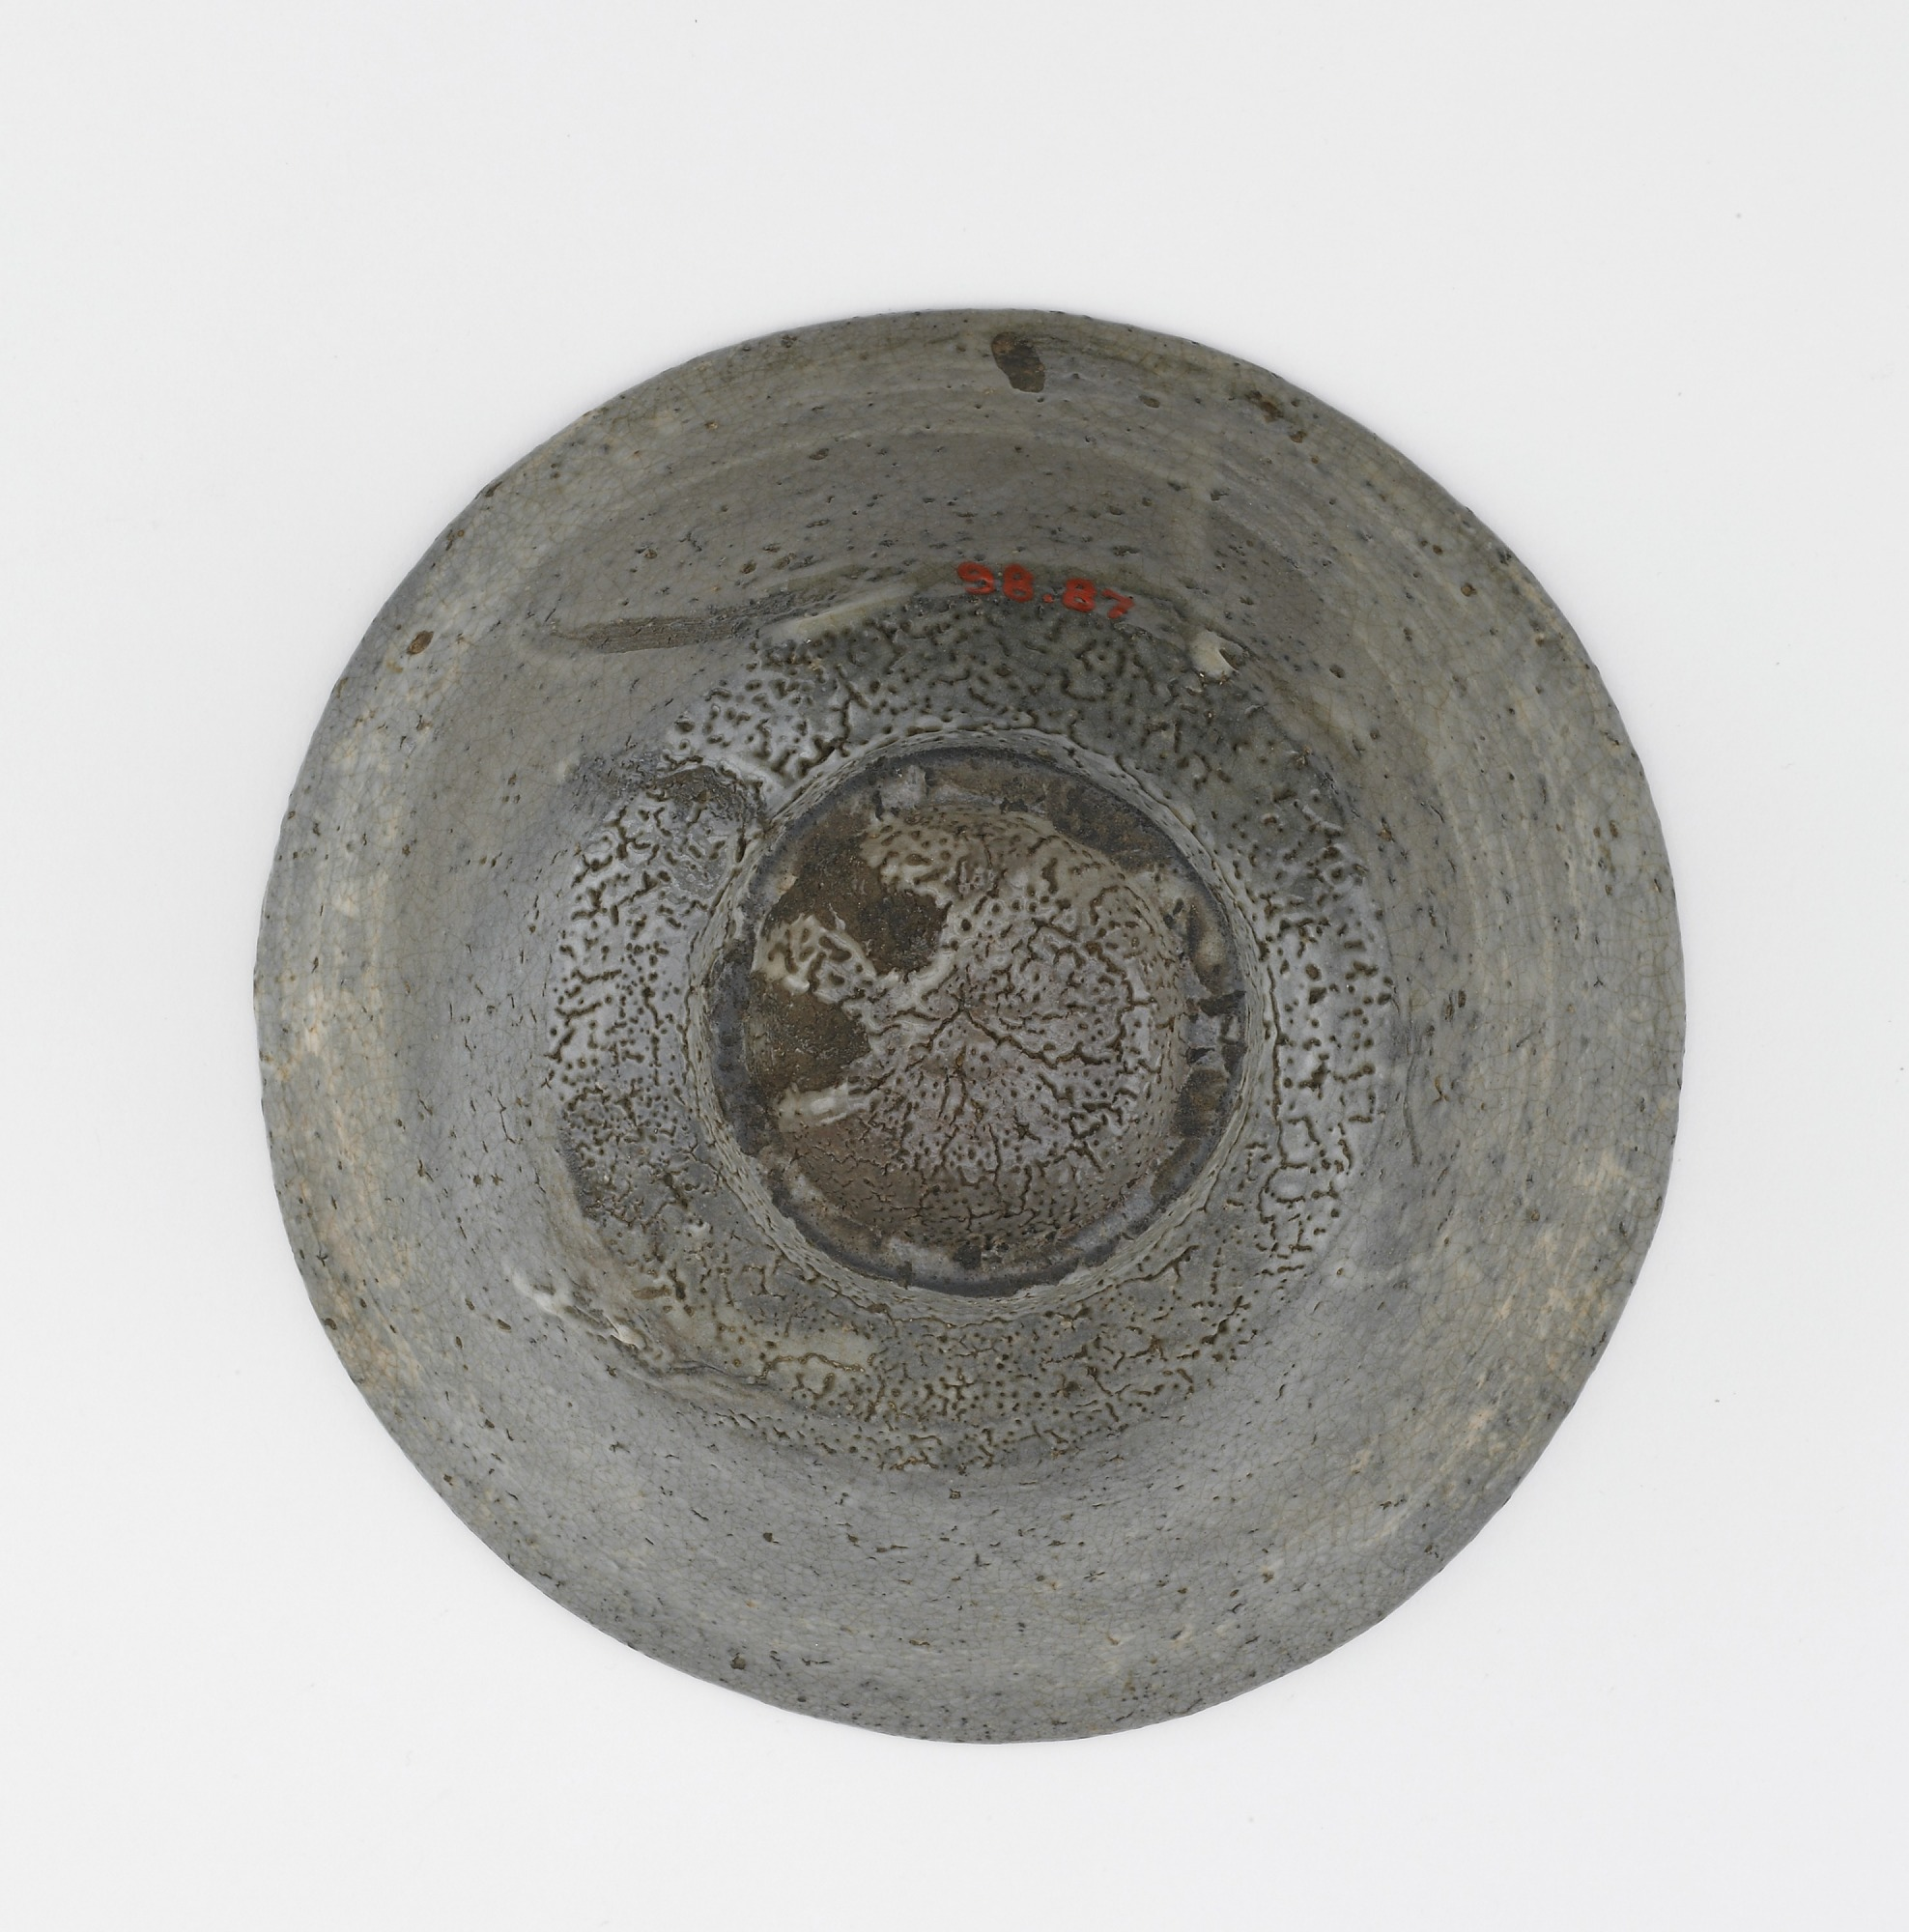 Tea bowl, Totoya type